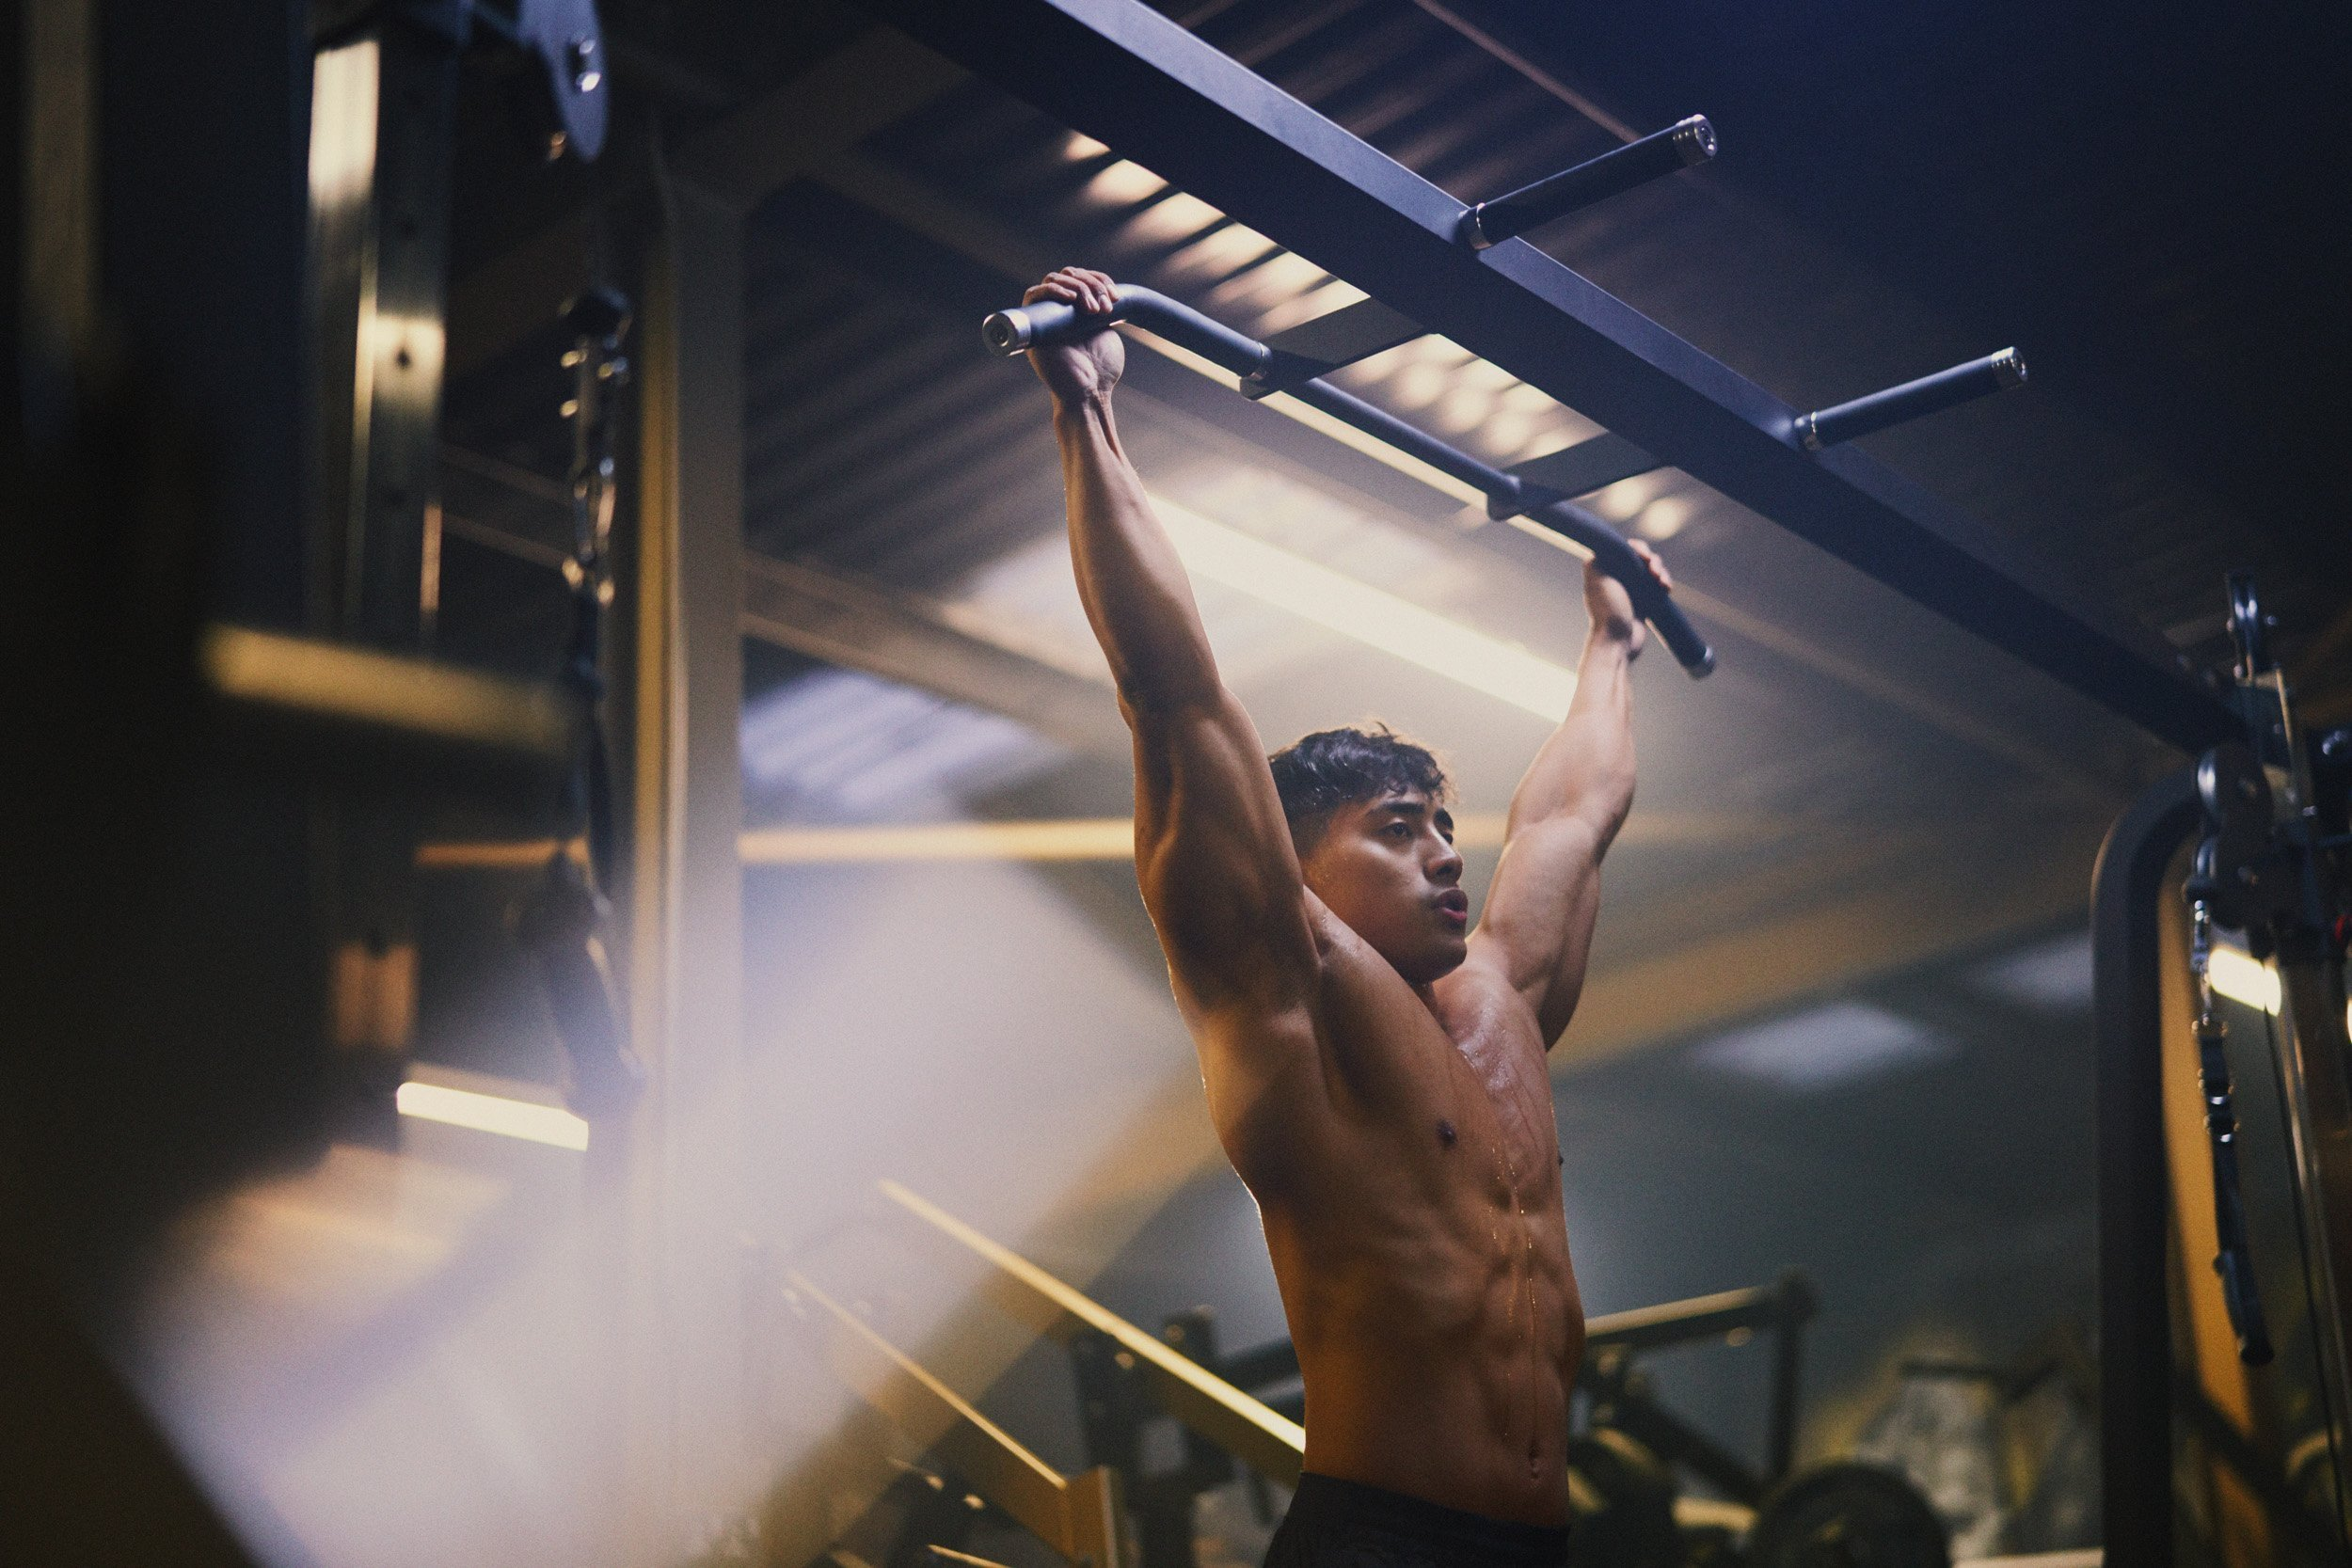 How To Do A Chin-Up | Benefits & Technique